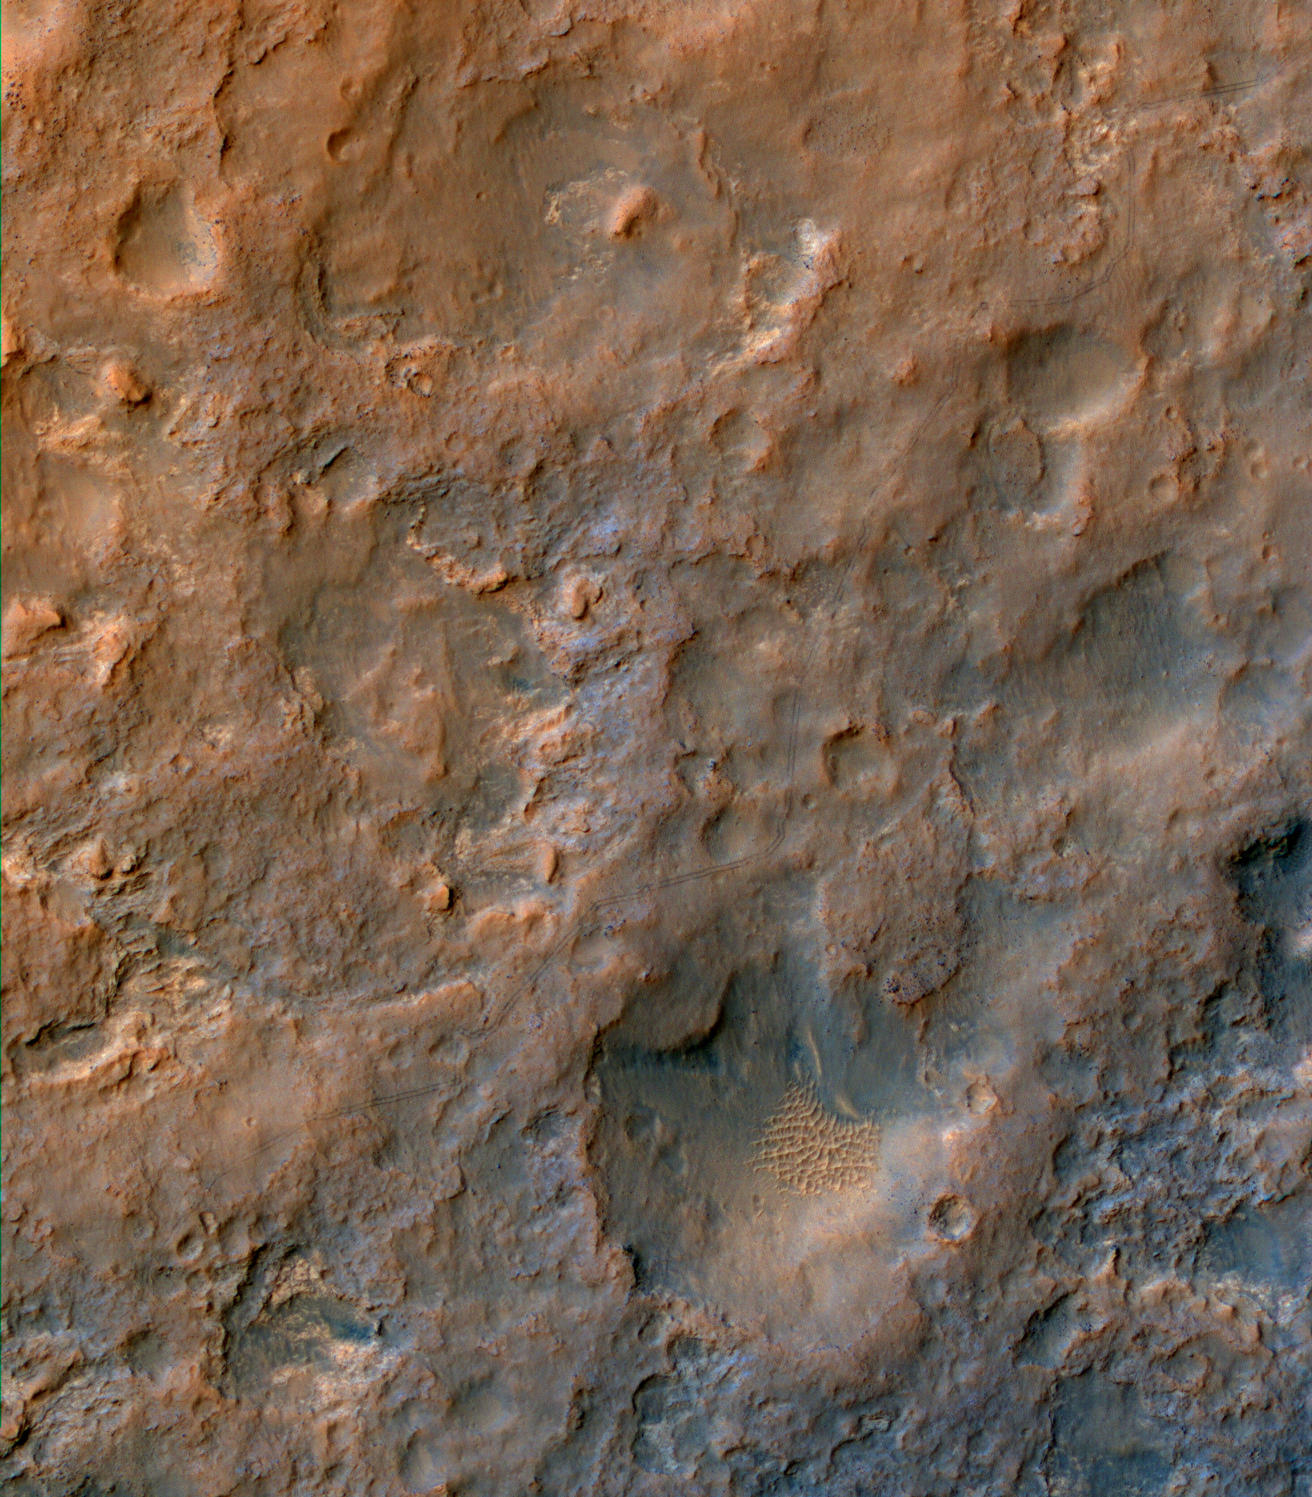 Curiosity Rover Tracks, Viewed from Orbit in December 2013